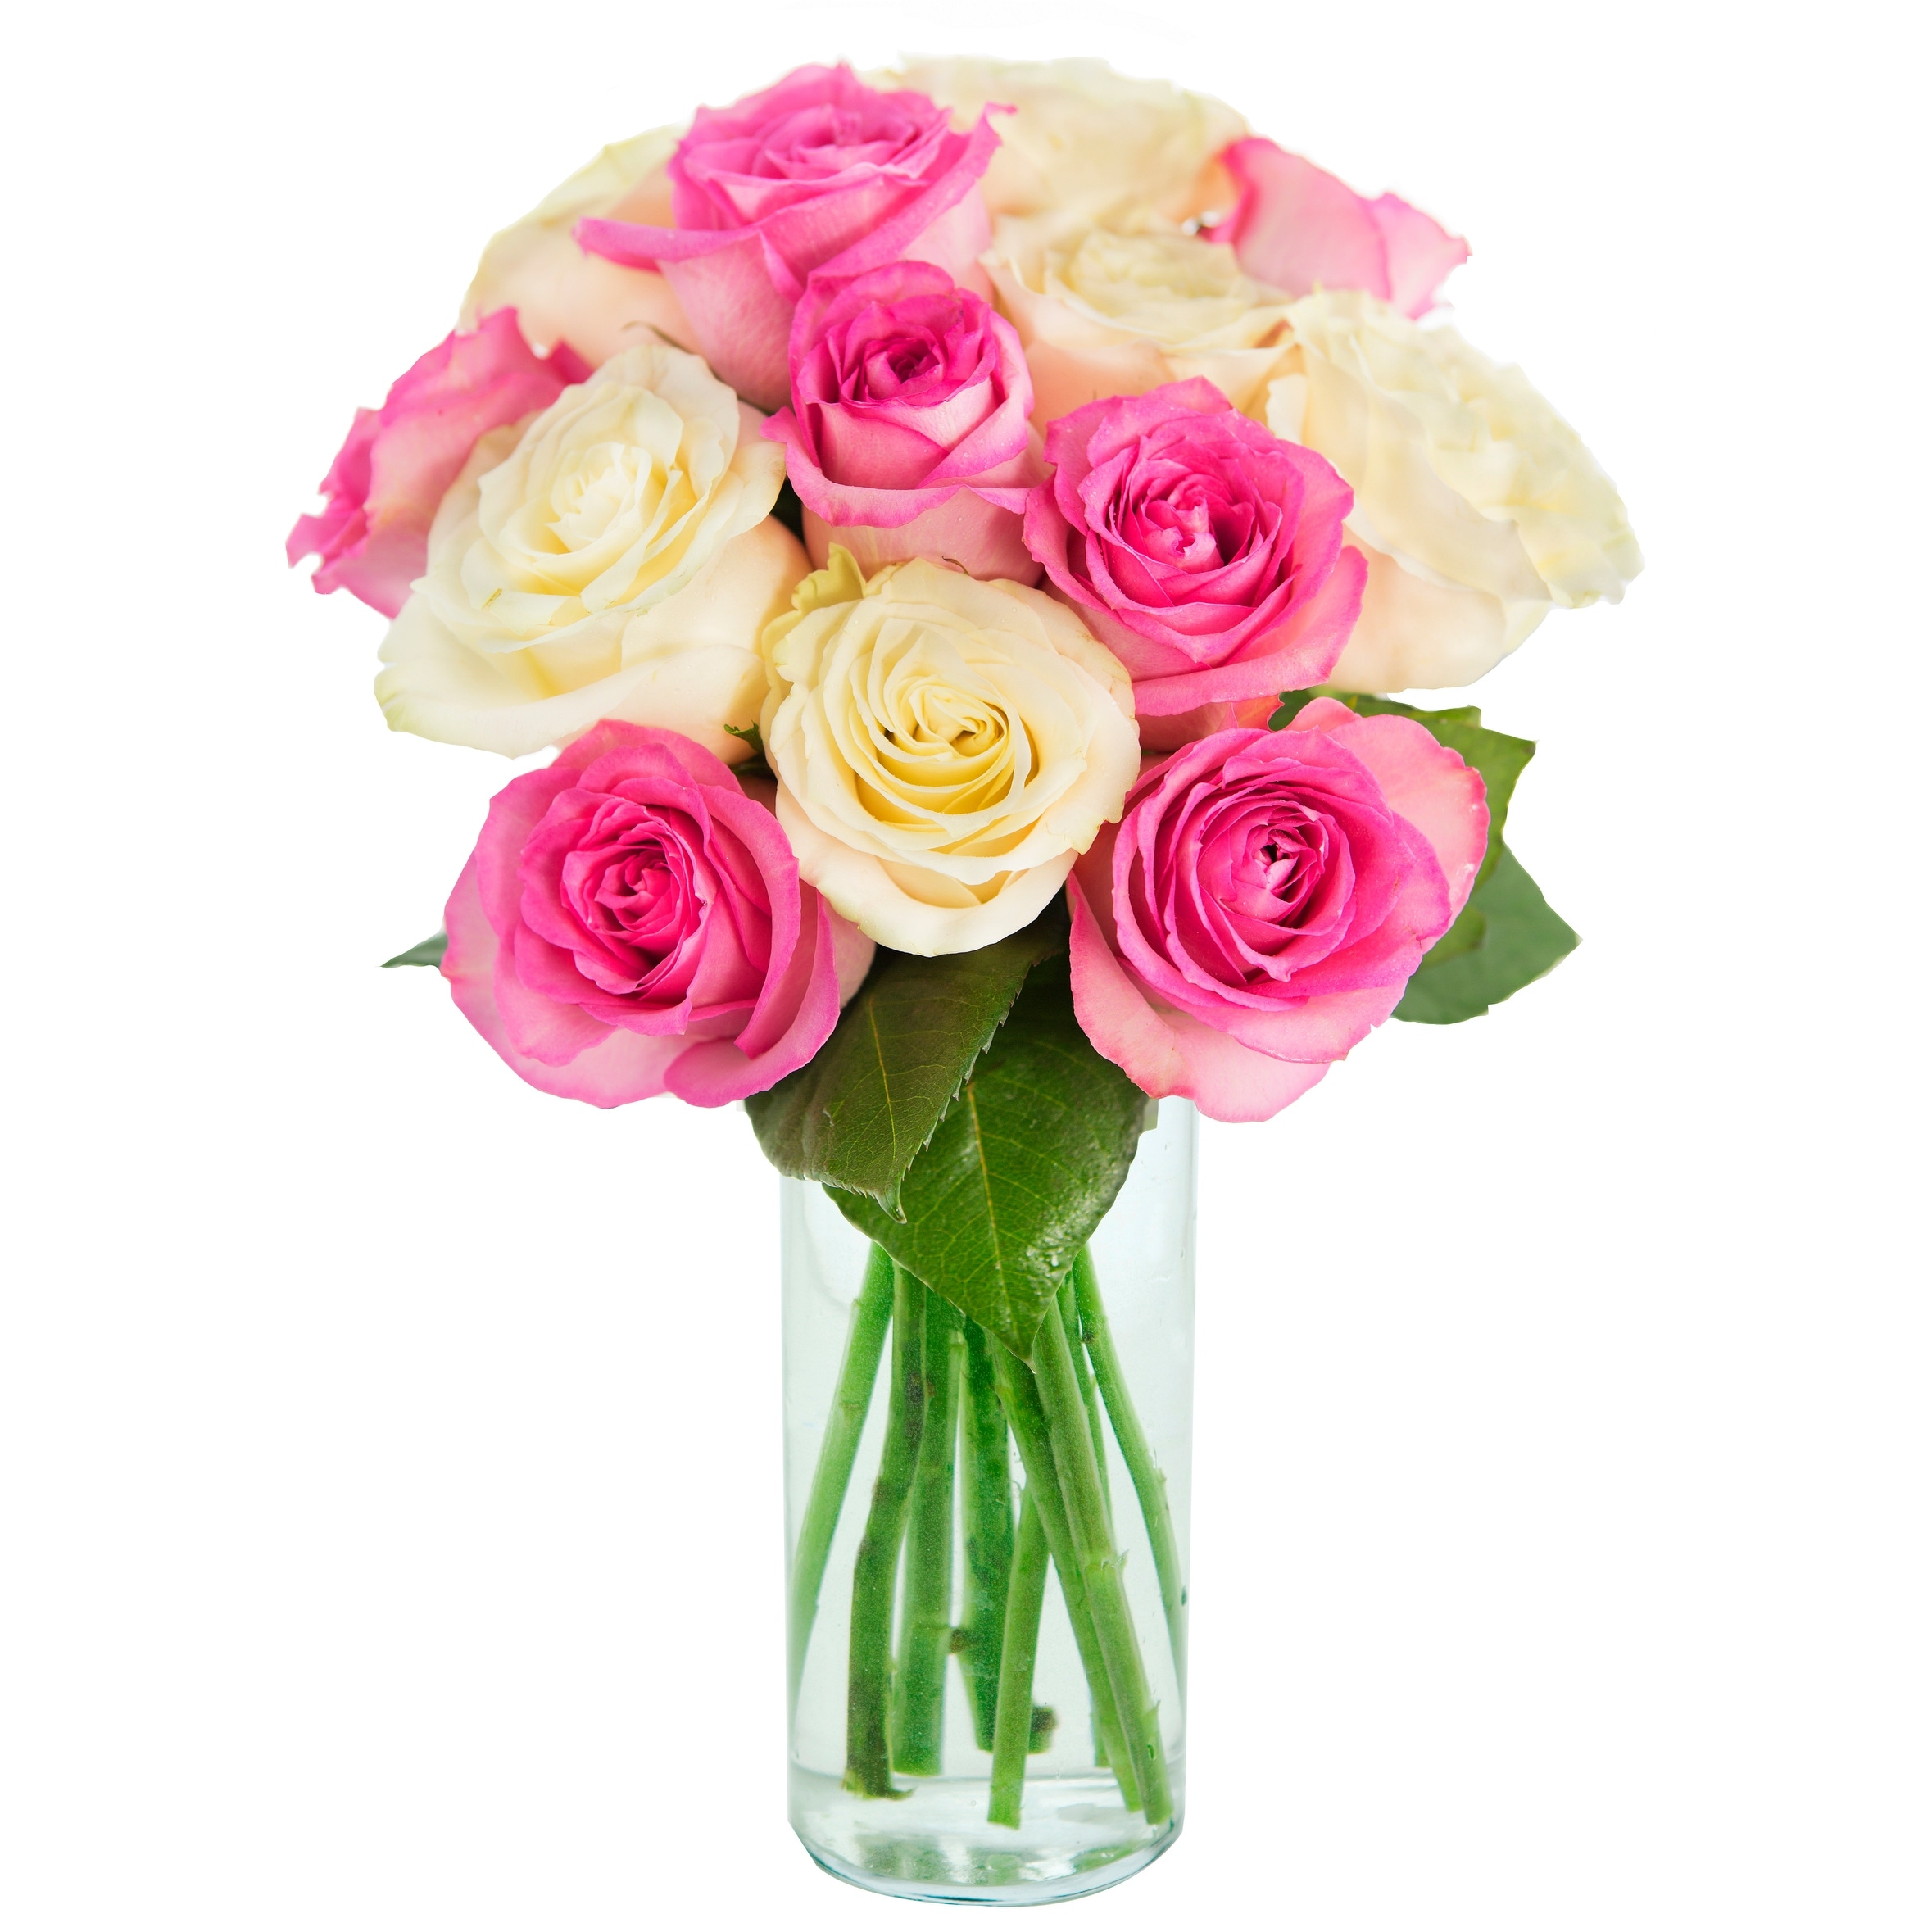 Kabloom Mothers Day Special Bouquet Of 12 Pink And White Roses